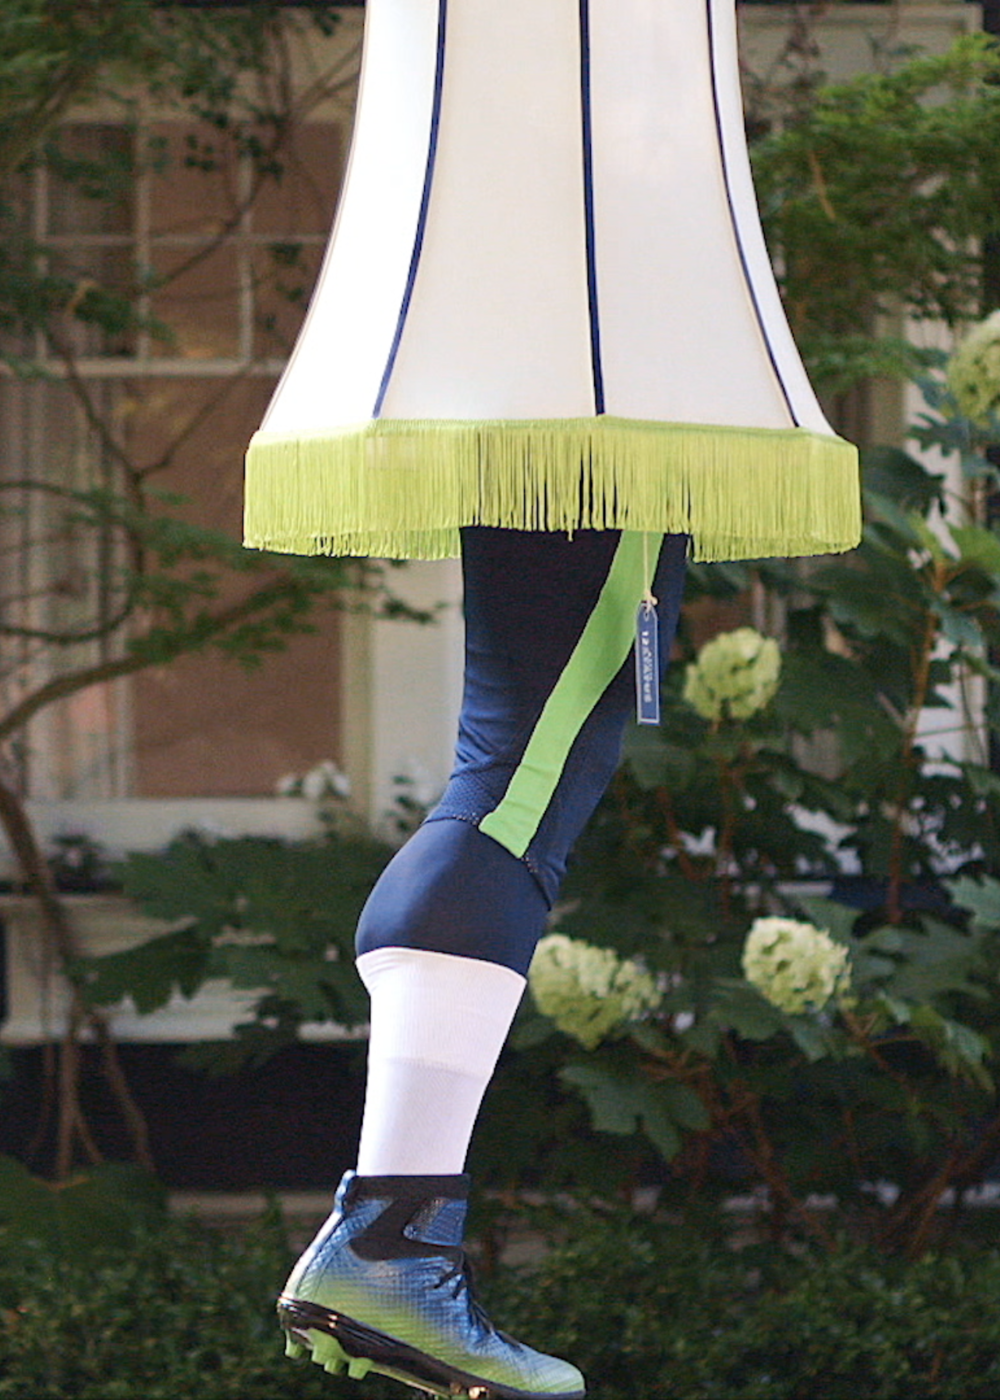 THE DOUG BALDWIN LEG LAMP